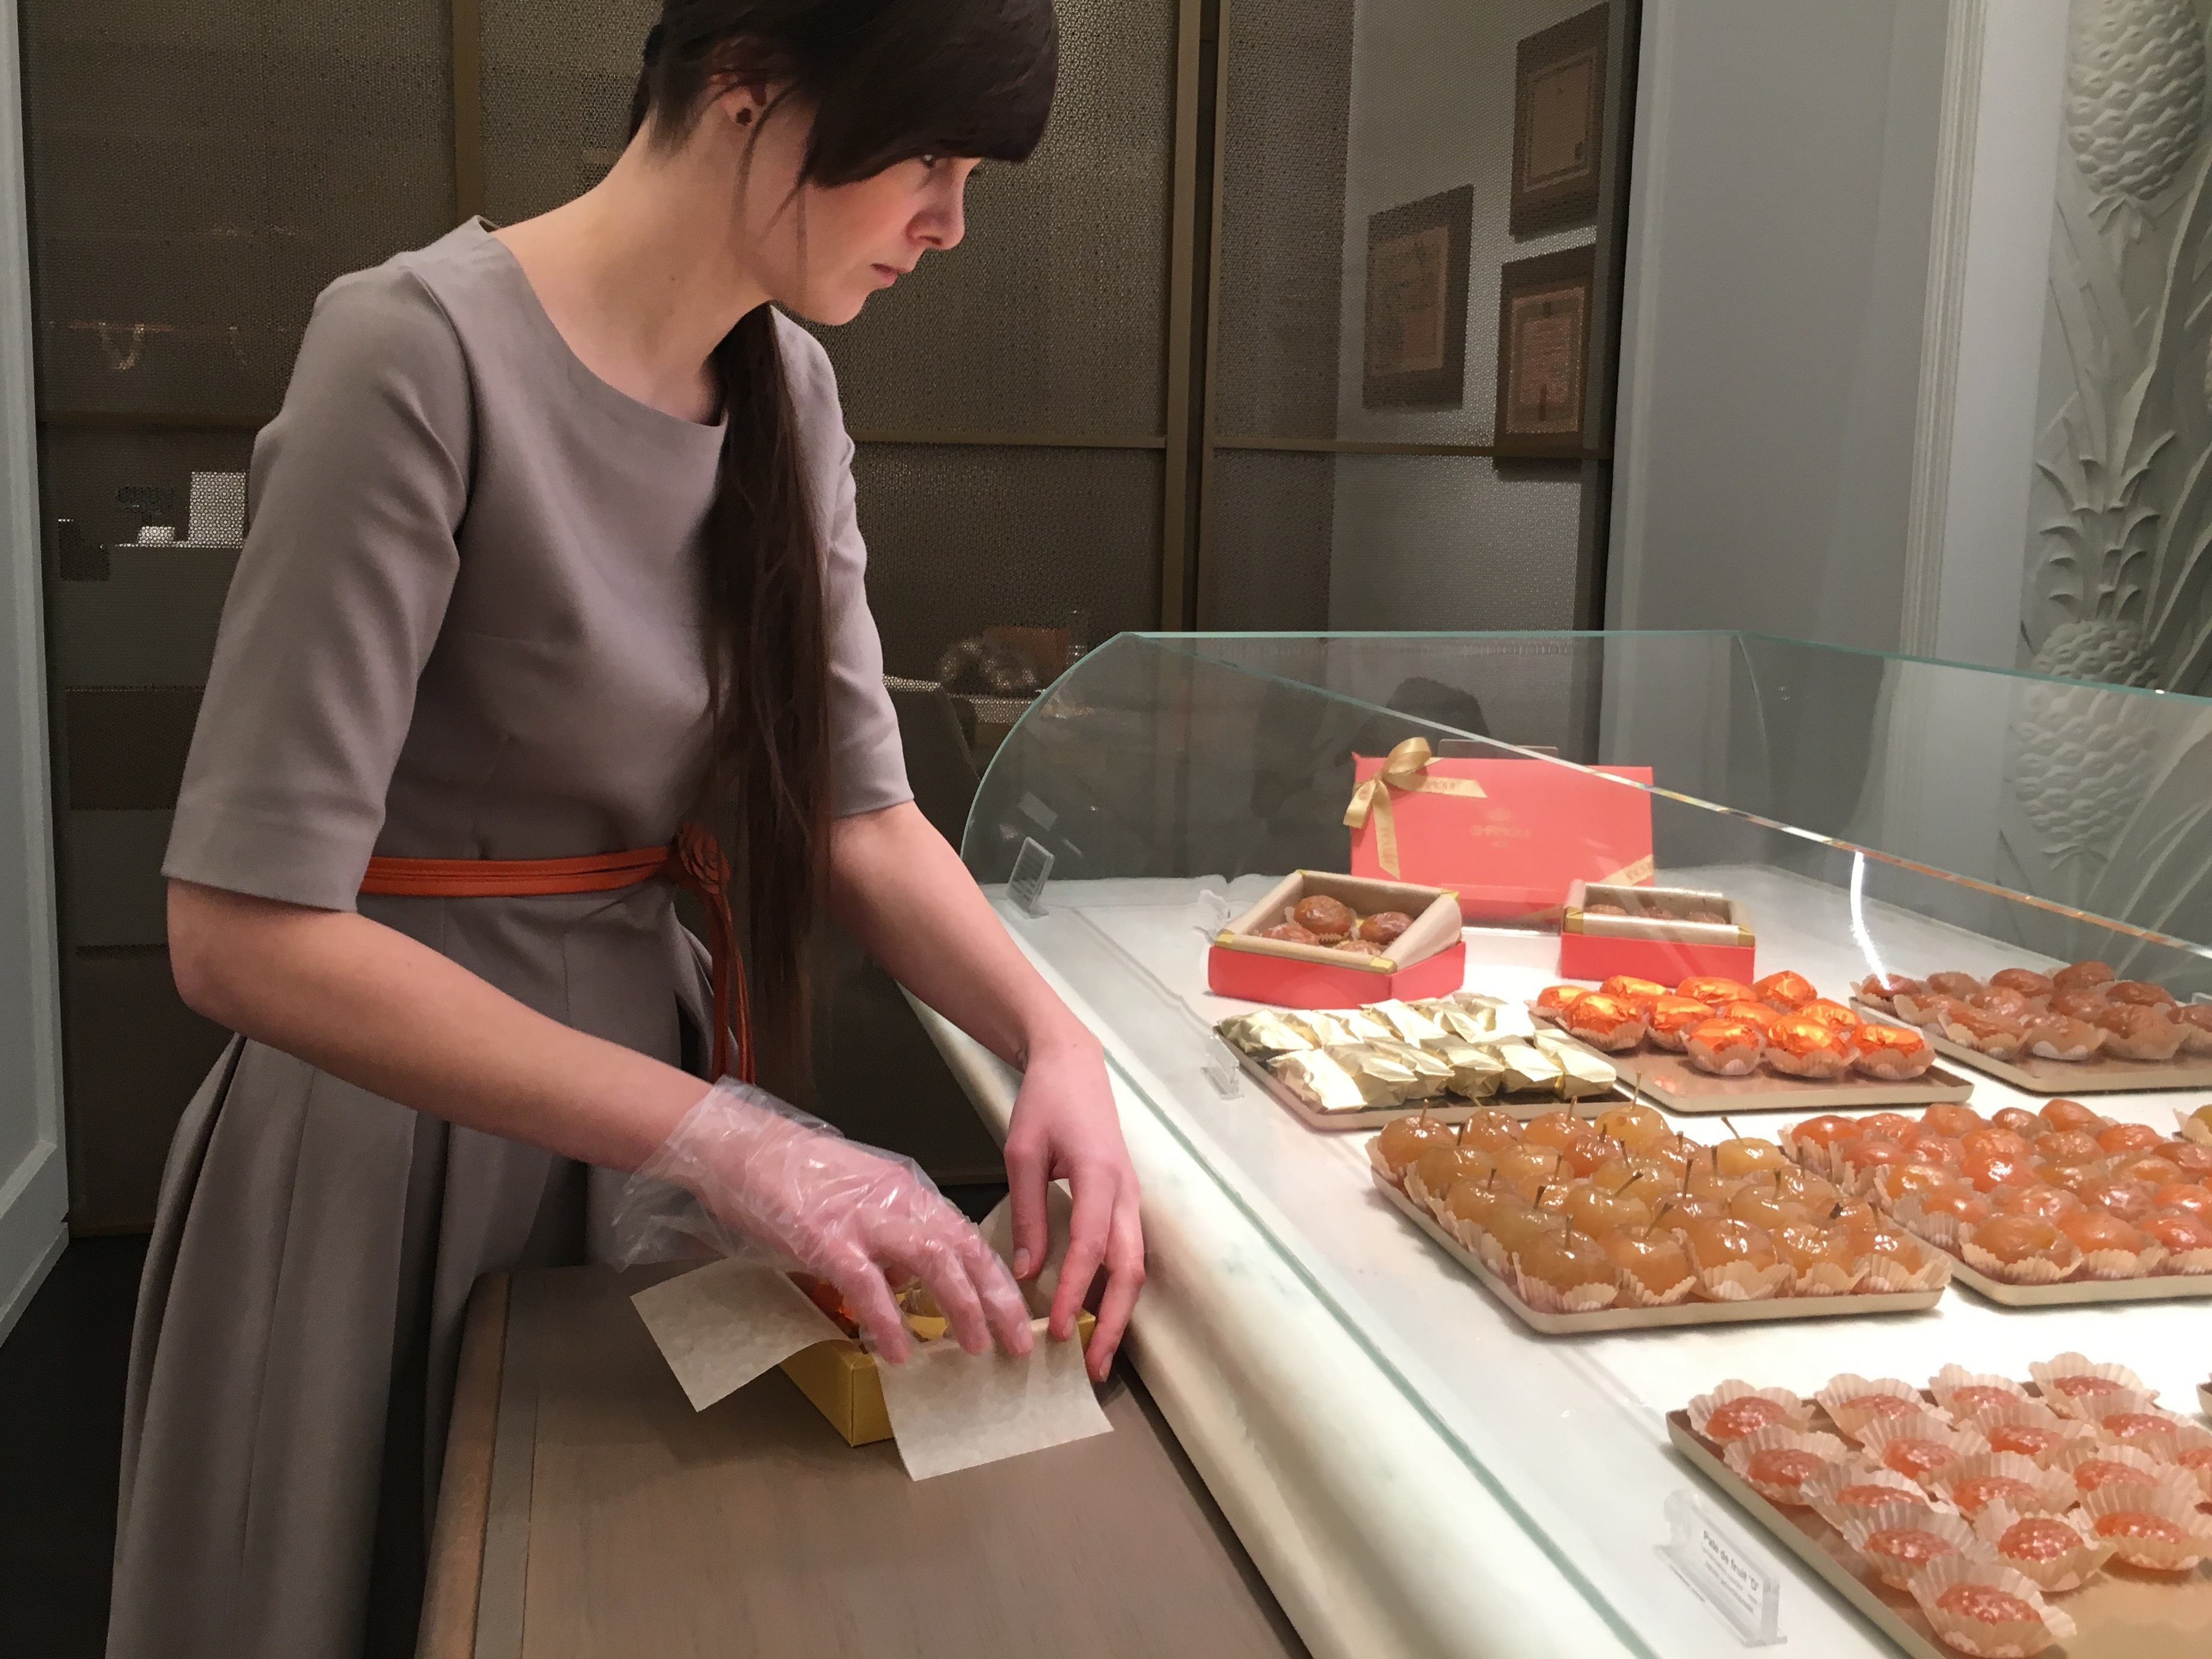 """""""The customers, they are curious ... and they ask, 'What makes this chocolate special?'"""" says sales associateNoemi Czinkoczky. """"And we tell them how much effort goes into each piece of chocolate. (Joanna Kakissis/NPR)"""